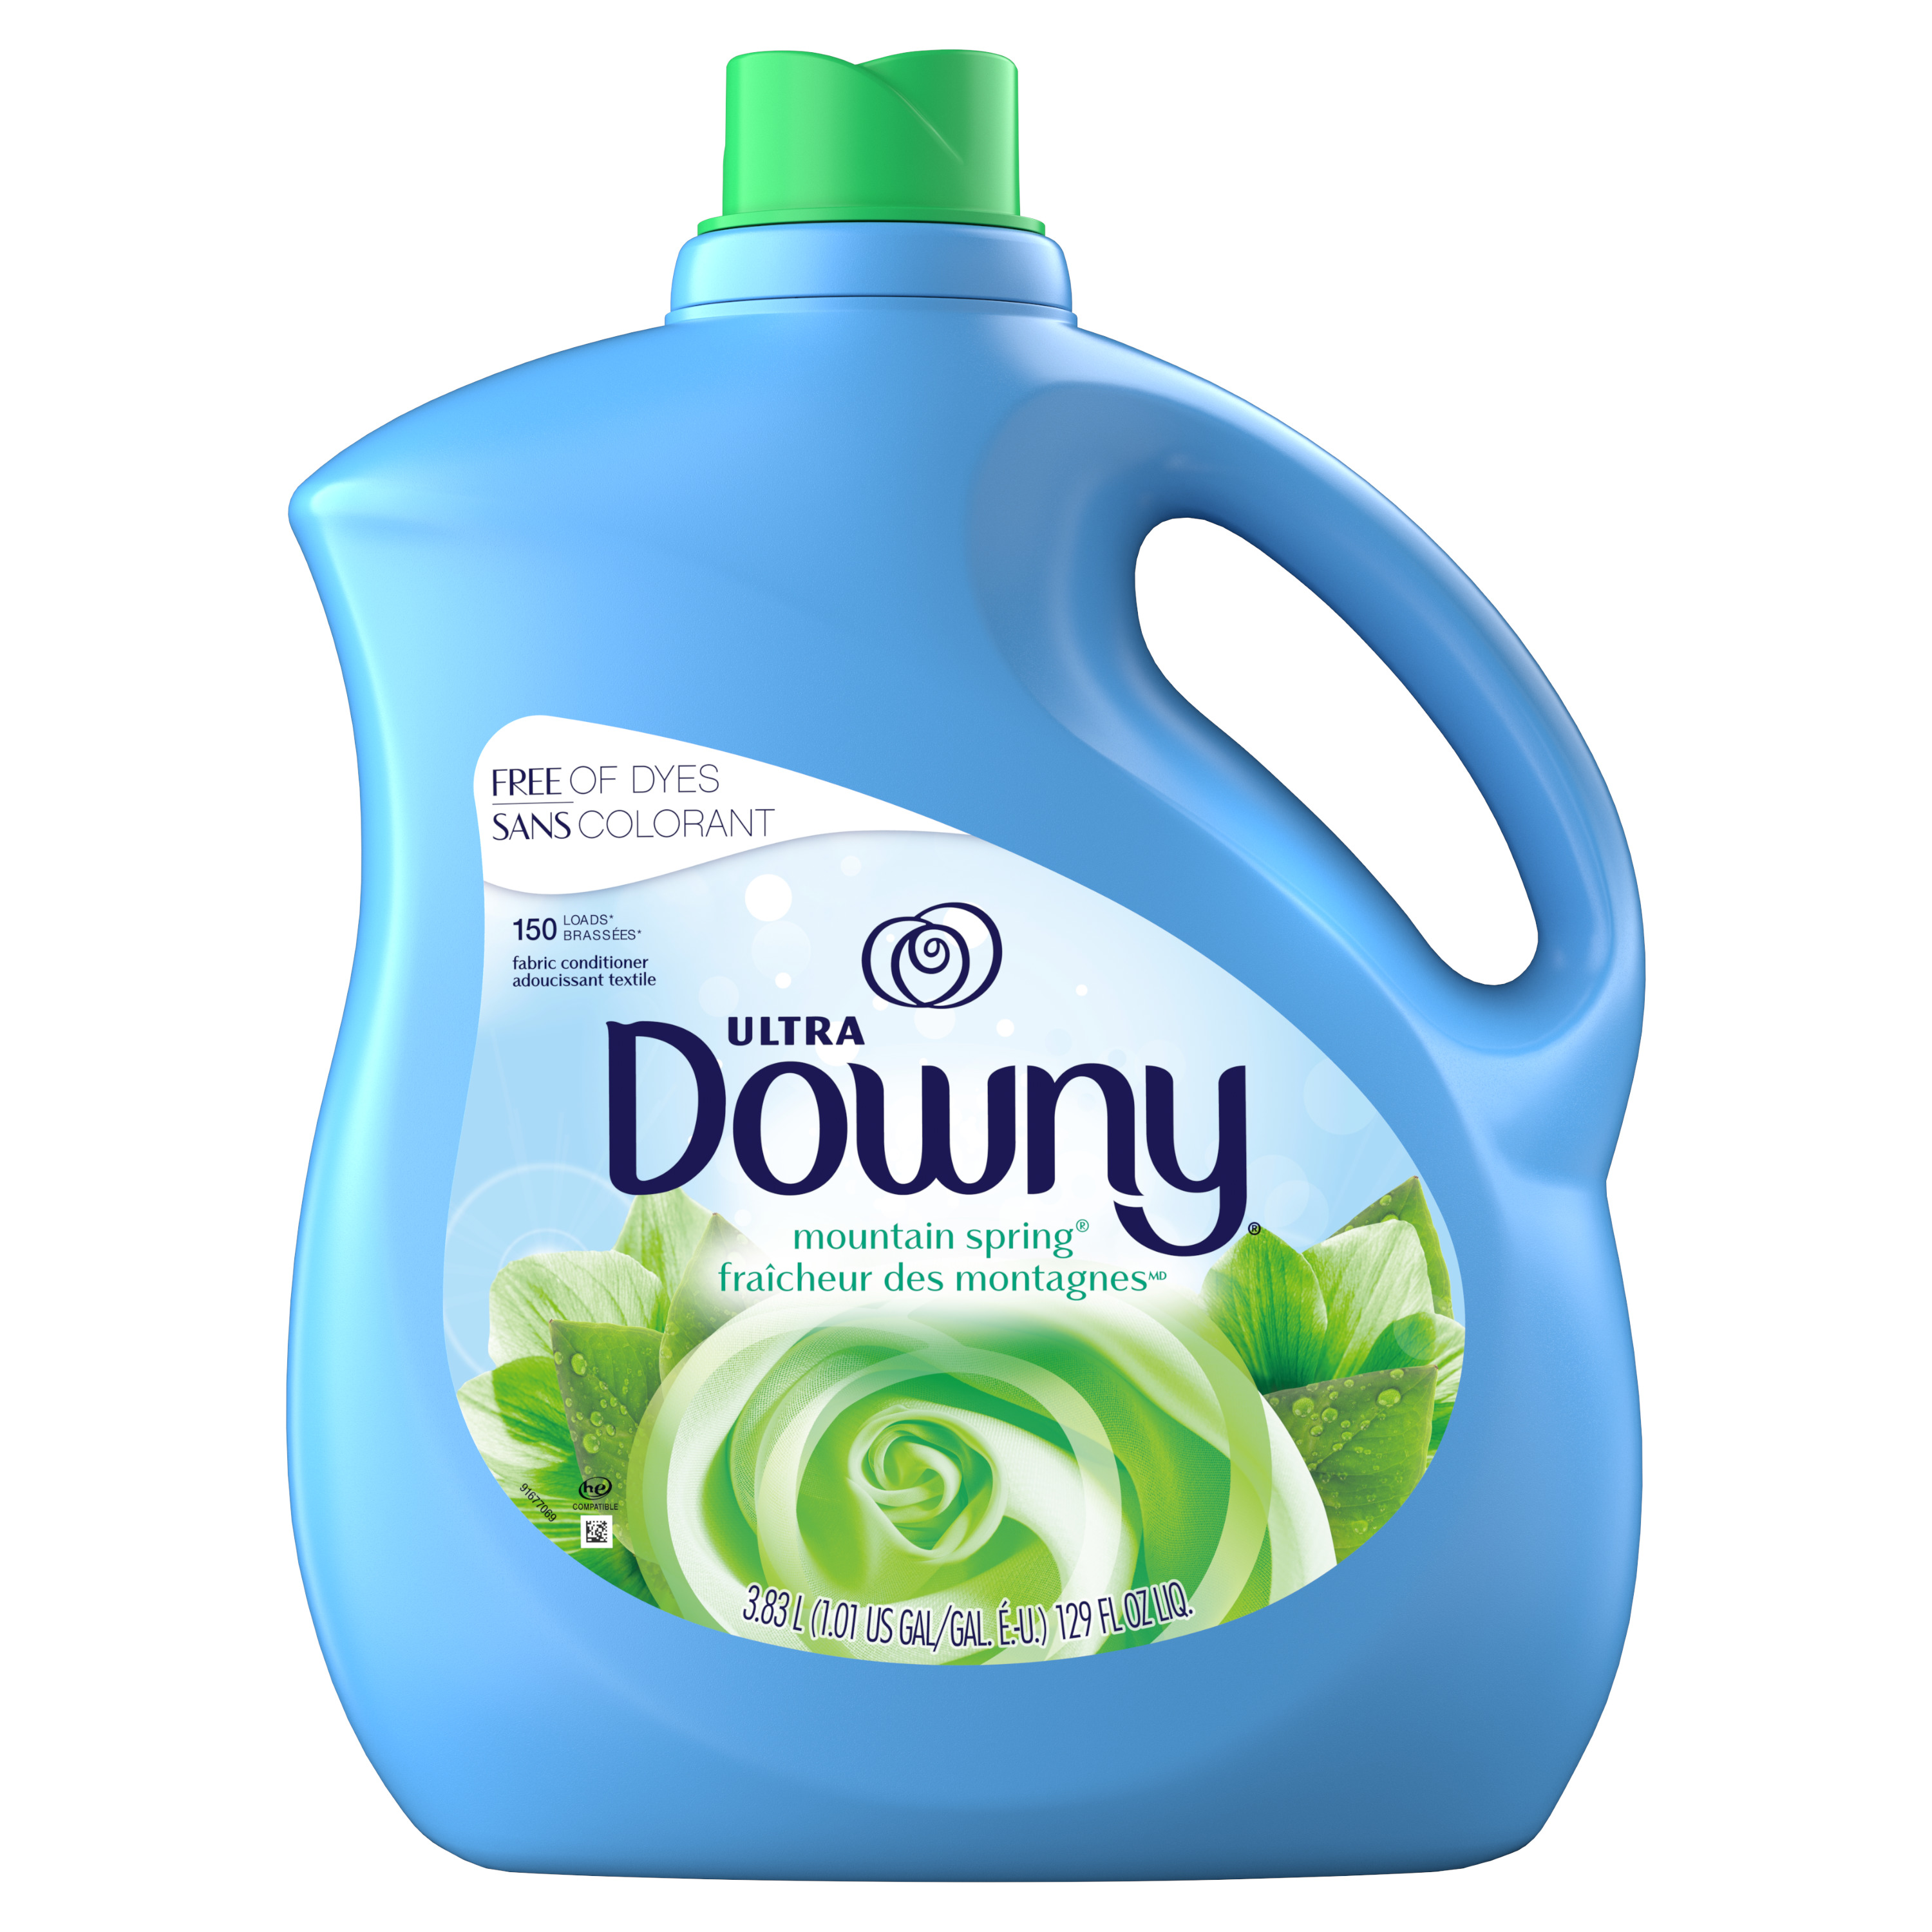 Downy Mountain Spring Liquid Fabric Conditioner (Fabric Softener), 150 Loads 129 fl oz